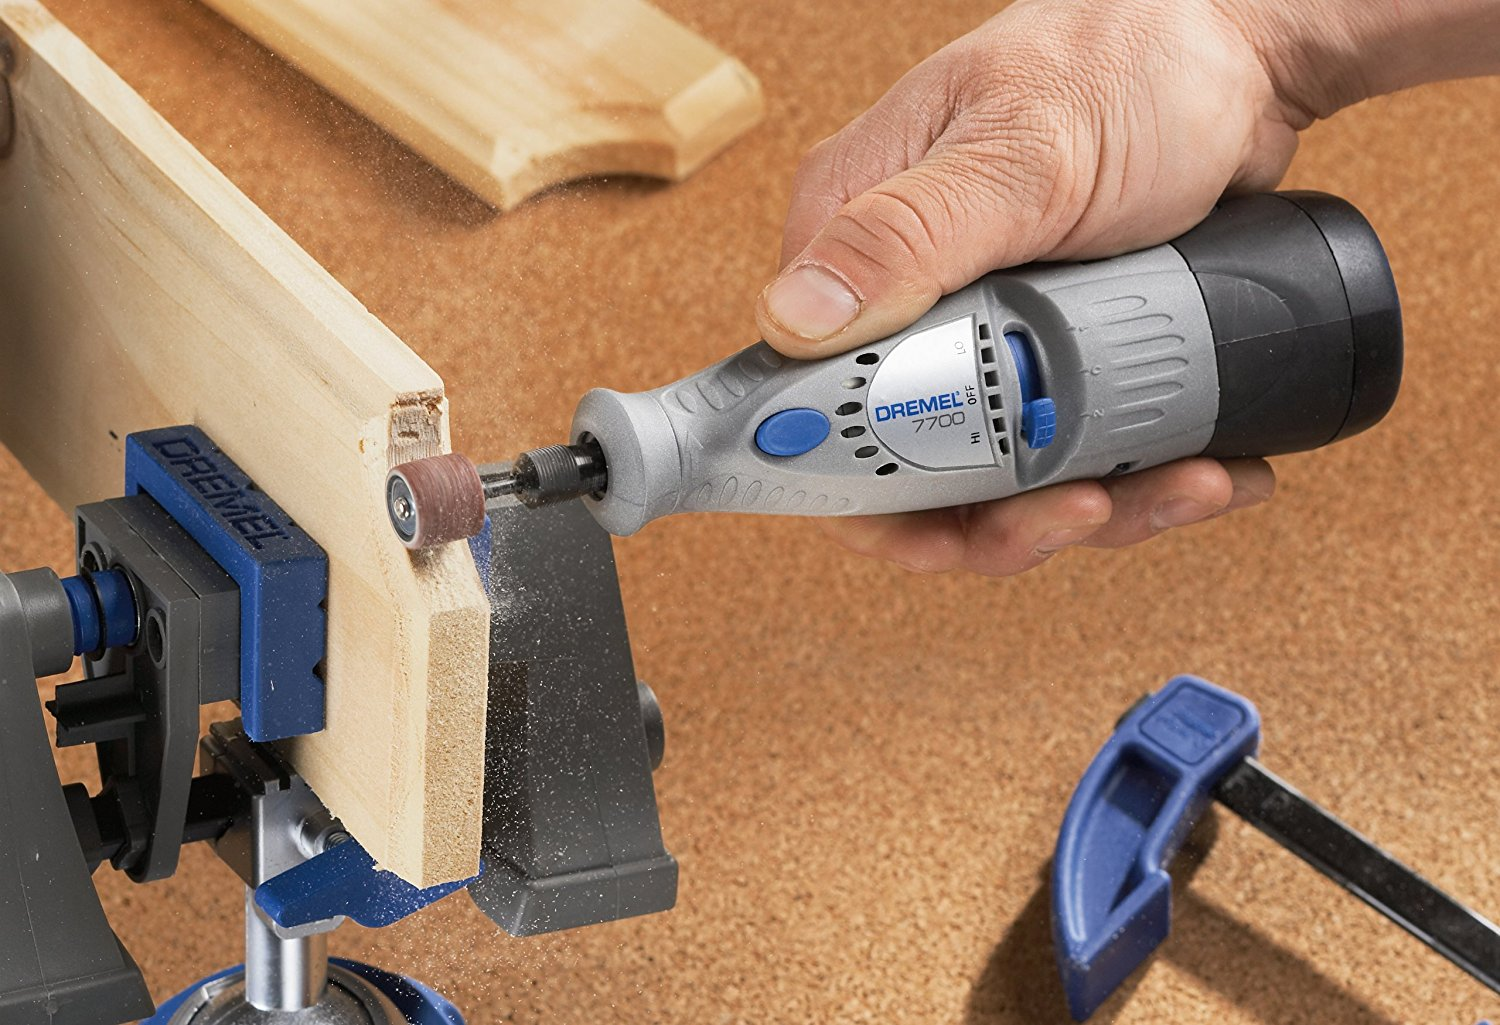 rotary tool projects Sears has versatile rotary tools that can cut, grind, engrave and more tackle a variety of projects with a new rotary cutter.